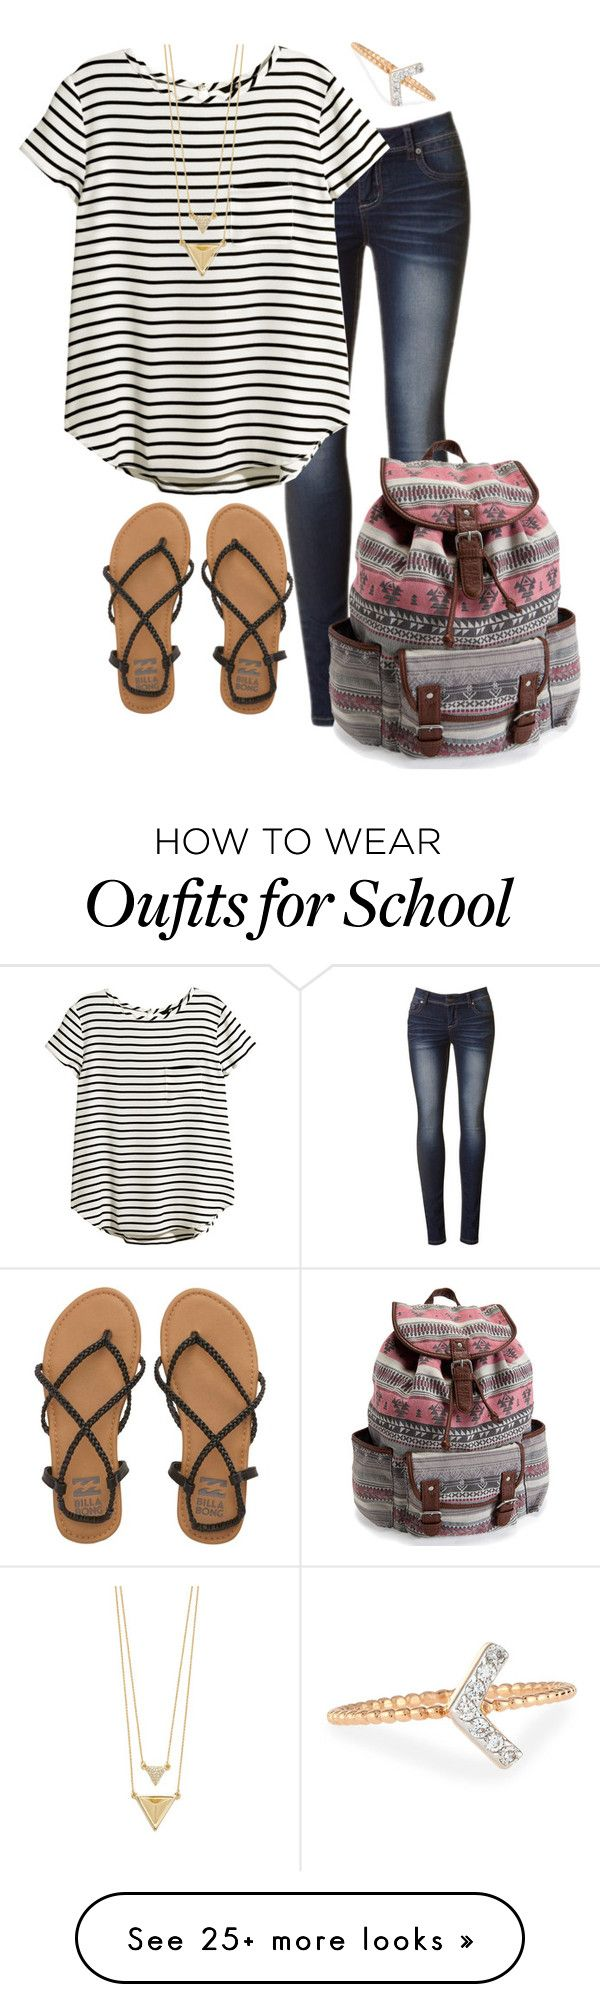 """""""School"""" by rachel-danca on Polyvore featuring H&M, Billabong, House of Harlow 1960, Kismet by Milka and Aéropostale"""